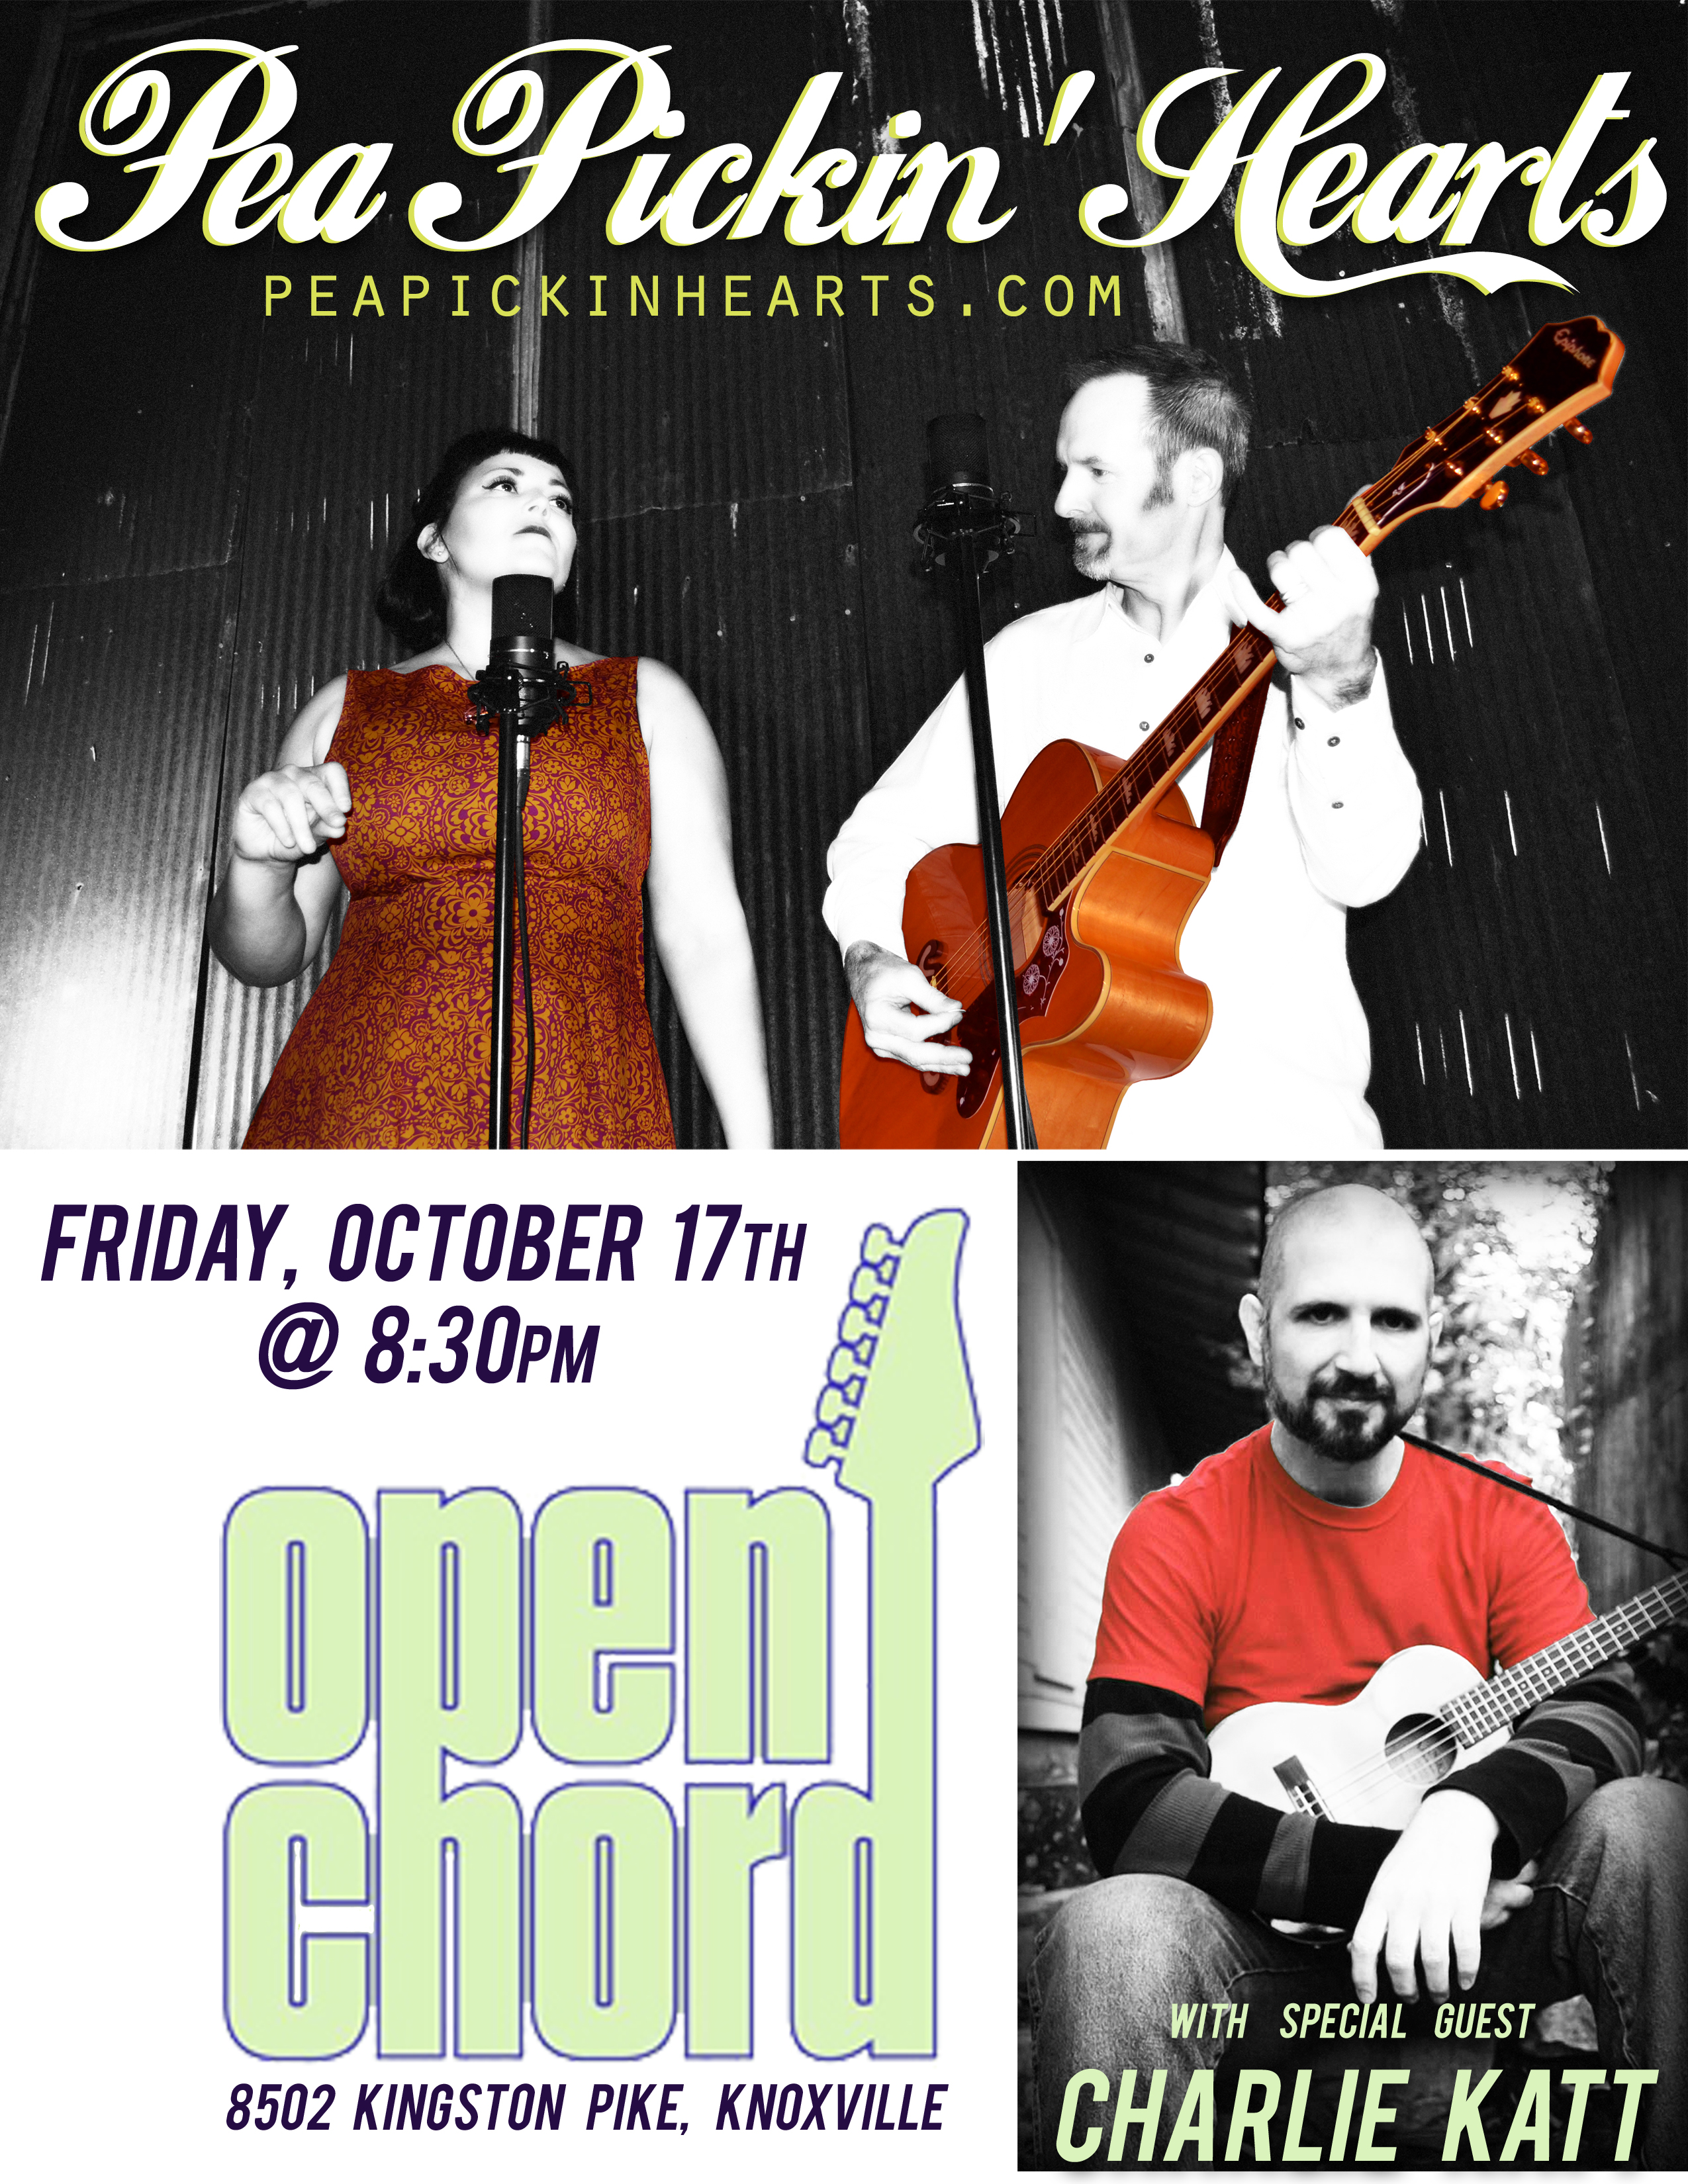 Hear the Pea Pickin' Hearts with special guest Charlie Katt at Open Chord Brewhouse in Knoxville!